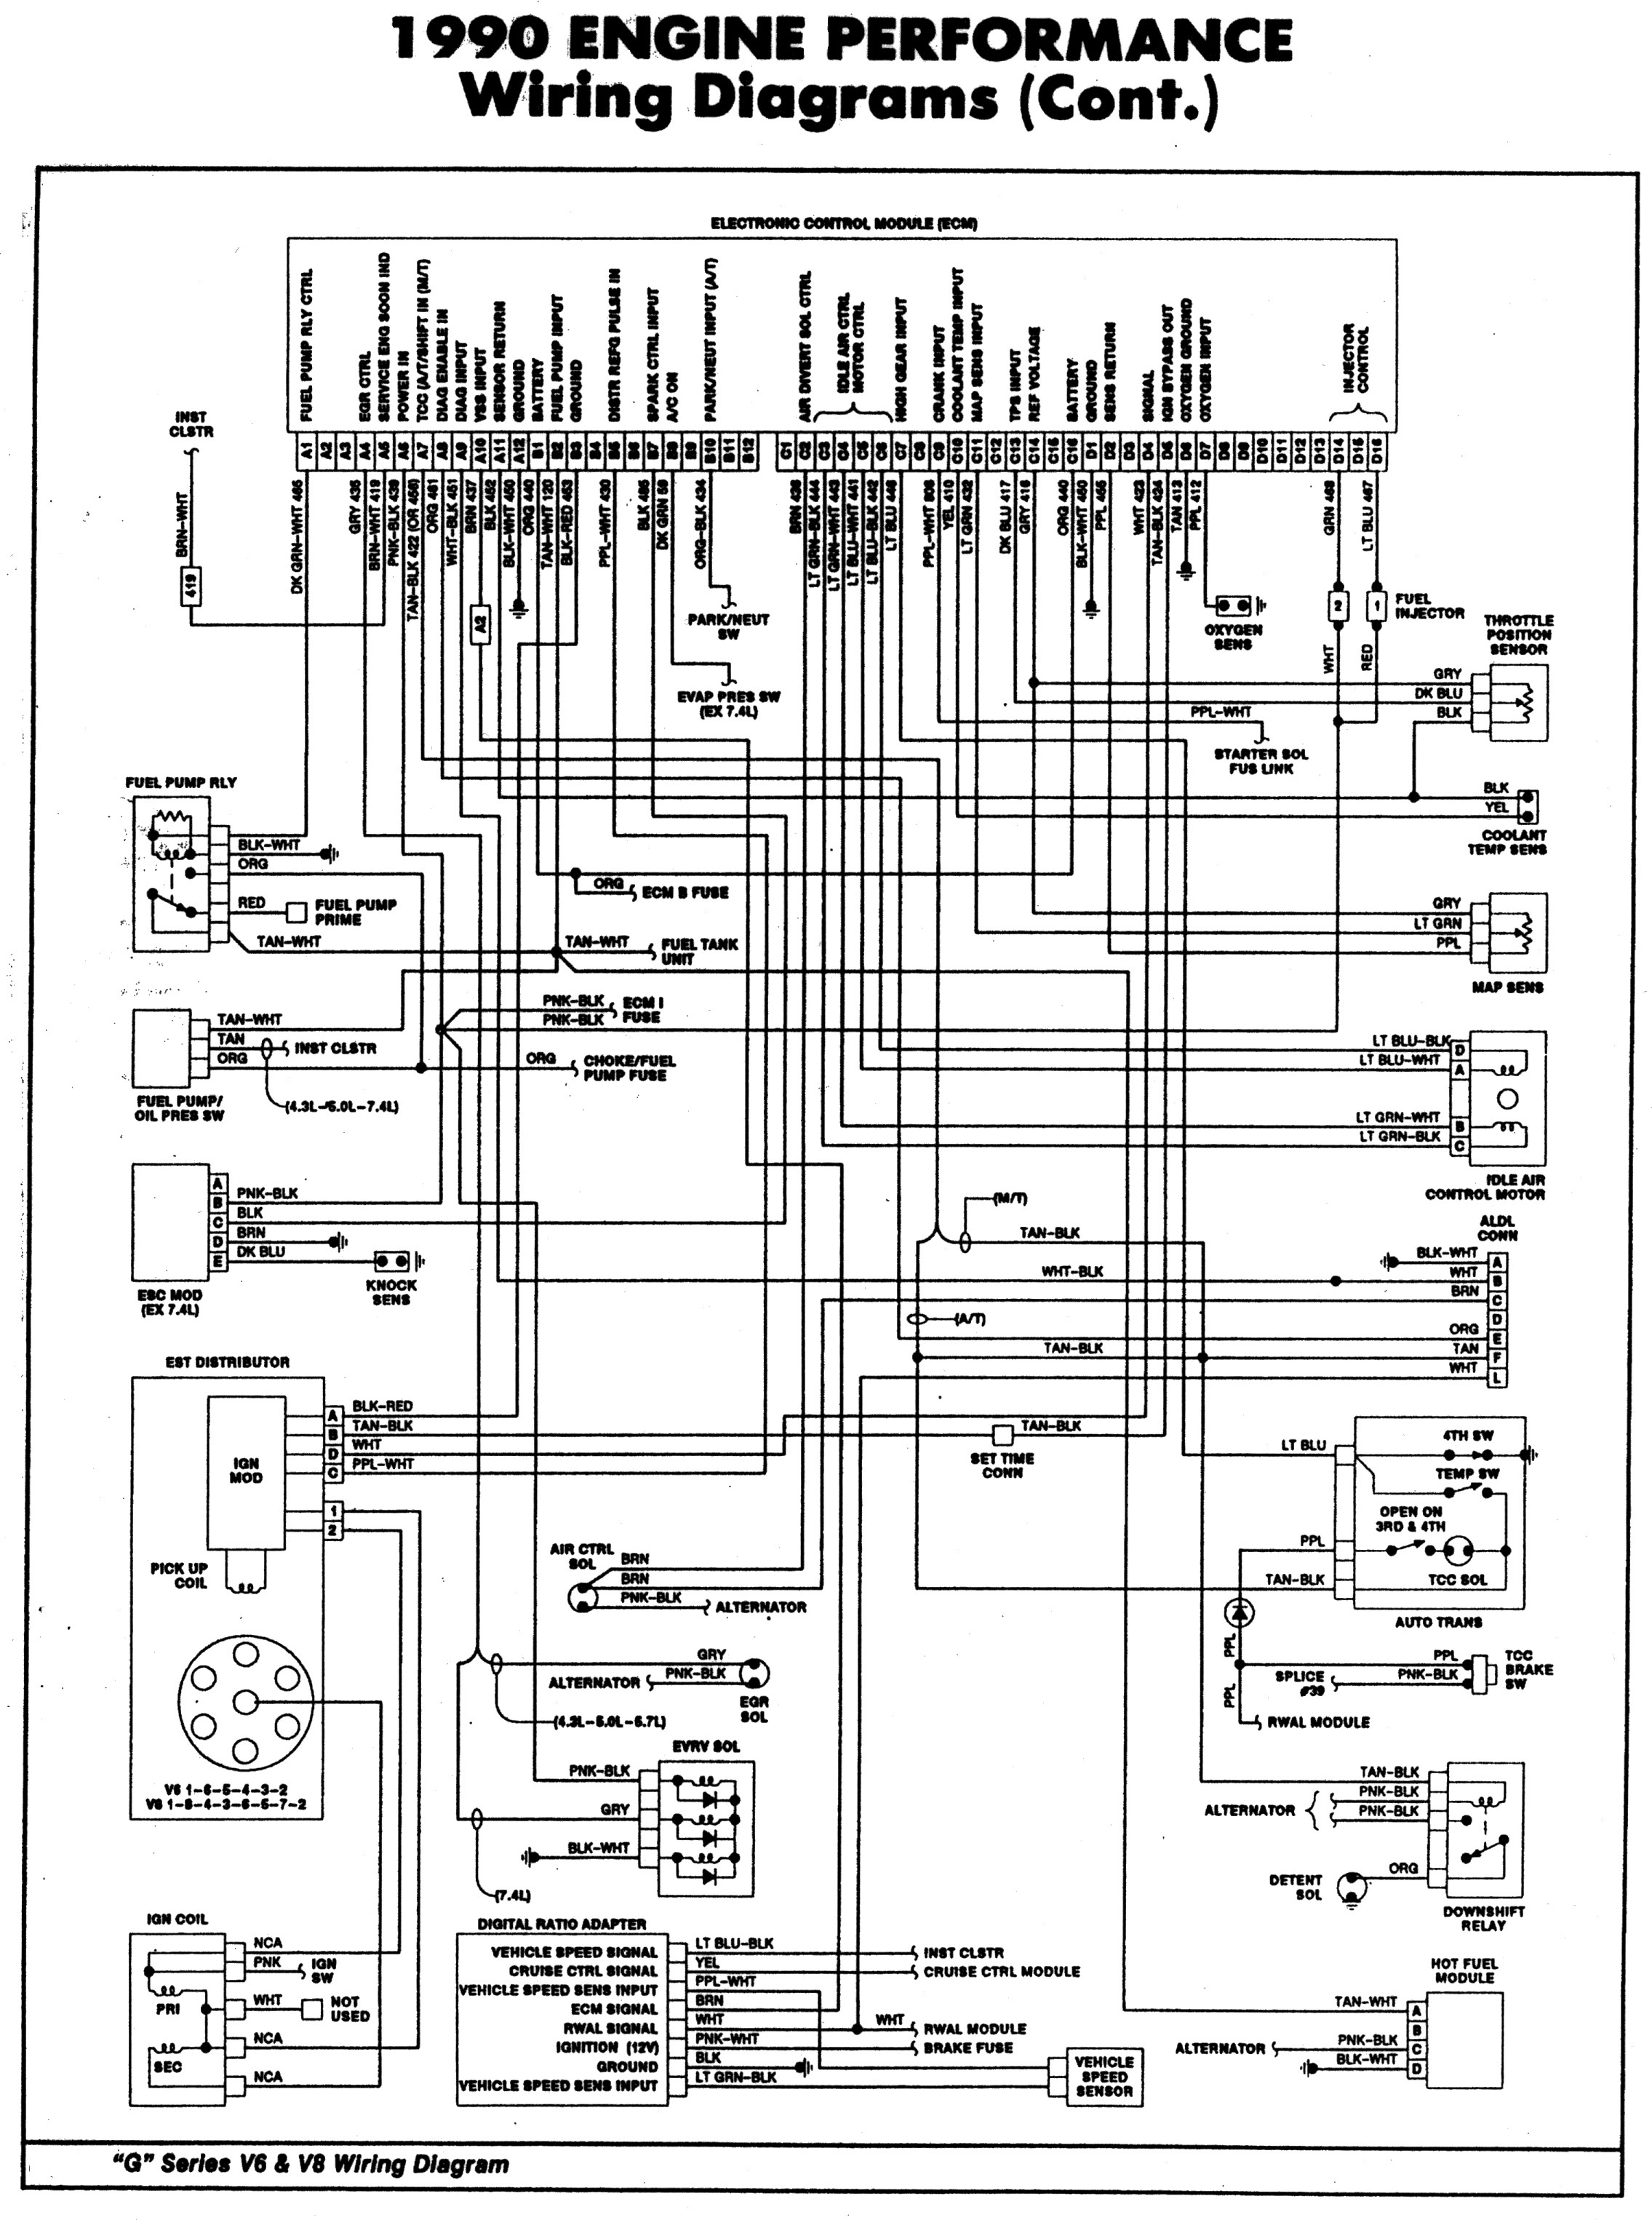 1990 gmc vandura wiring diagram wiring diagrams favorites 1990 gmc vandura wiring diagram wiring diagram toolbox [ 2271 x 3051 Pixel ]